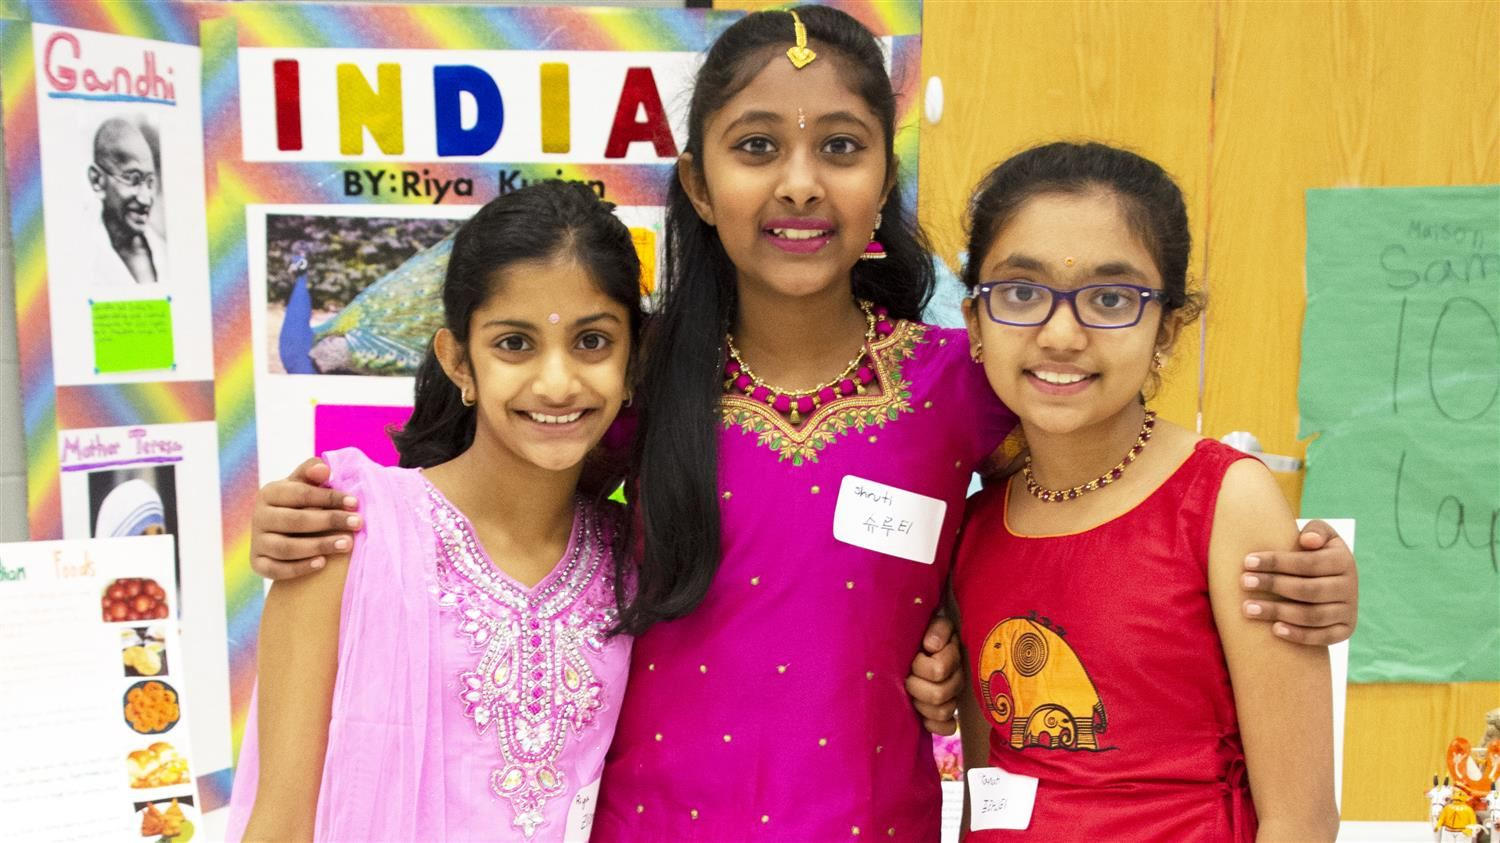 International Cultural Day Shines Bright at Coyote Ridge Elementary